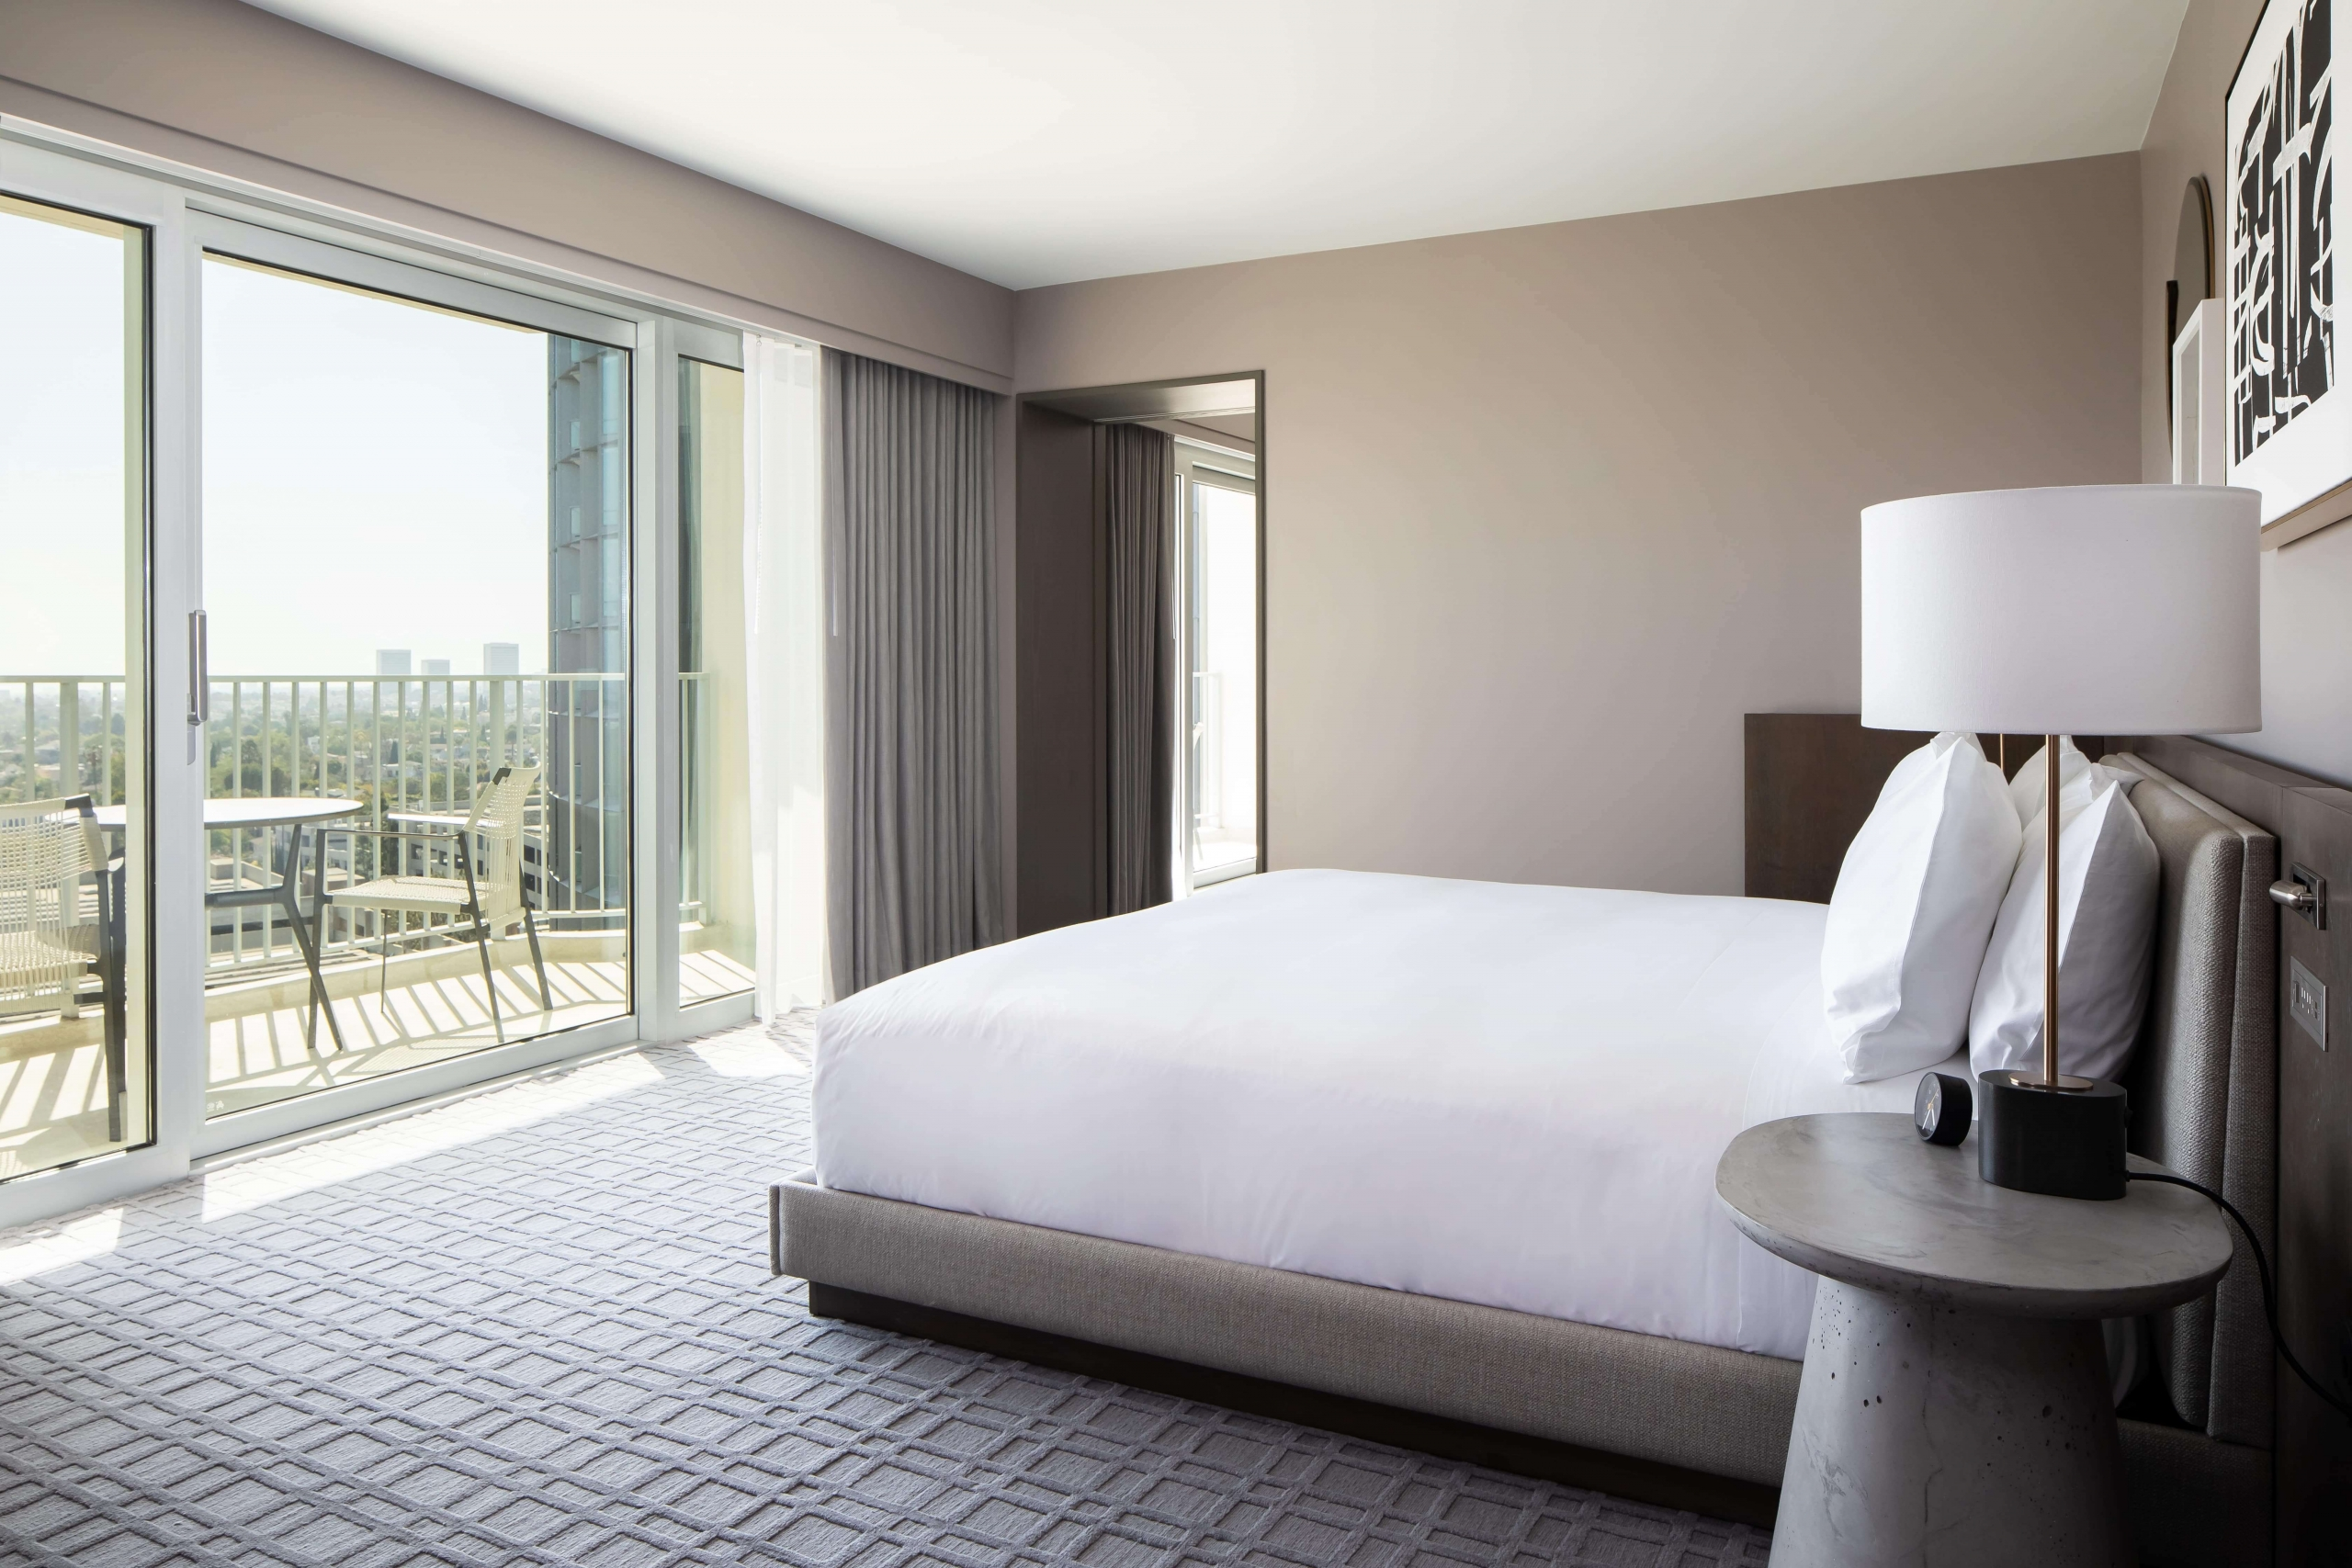 A clean hotel bedroom with balcony access through french doors.